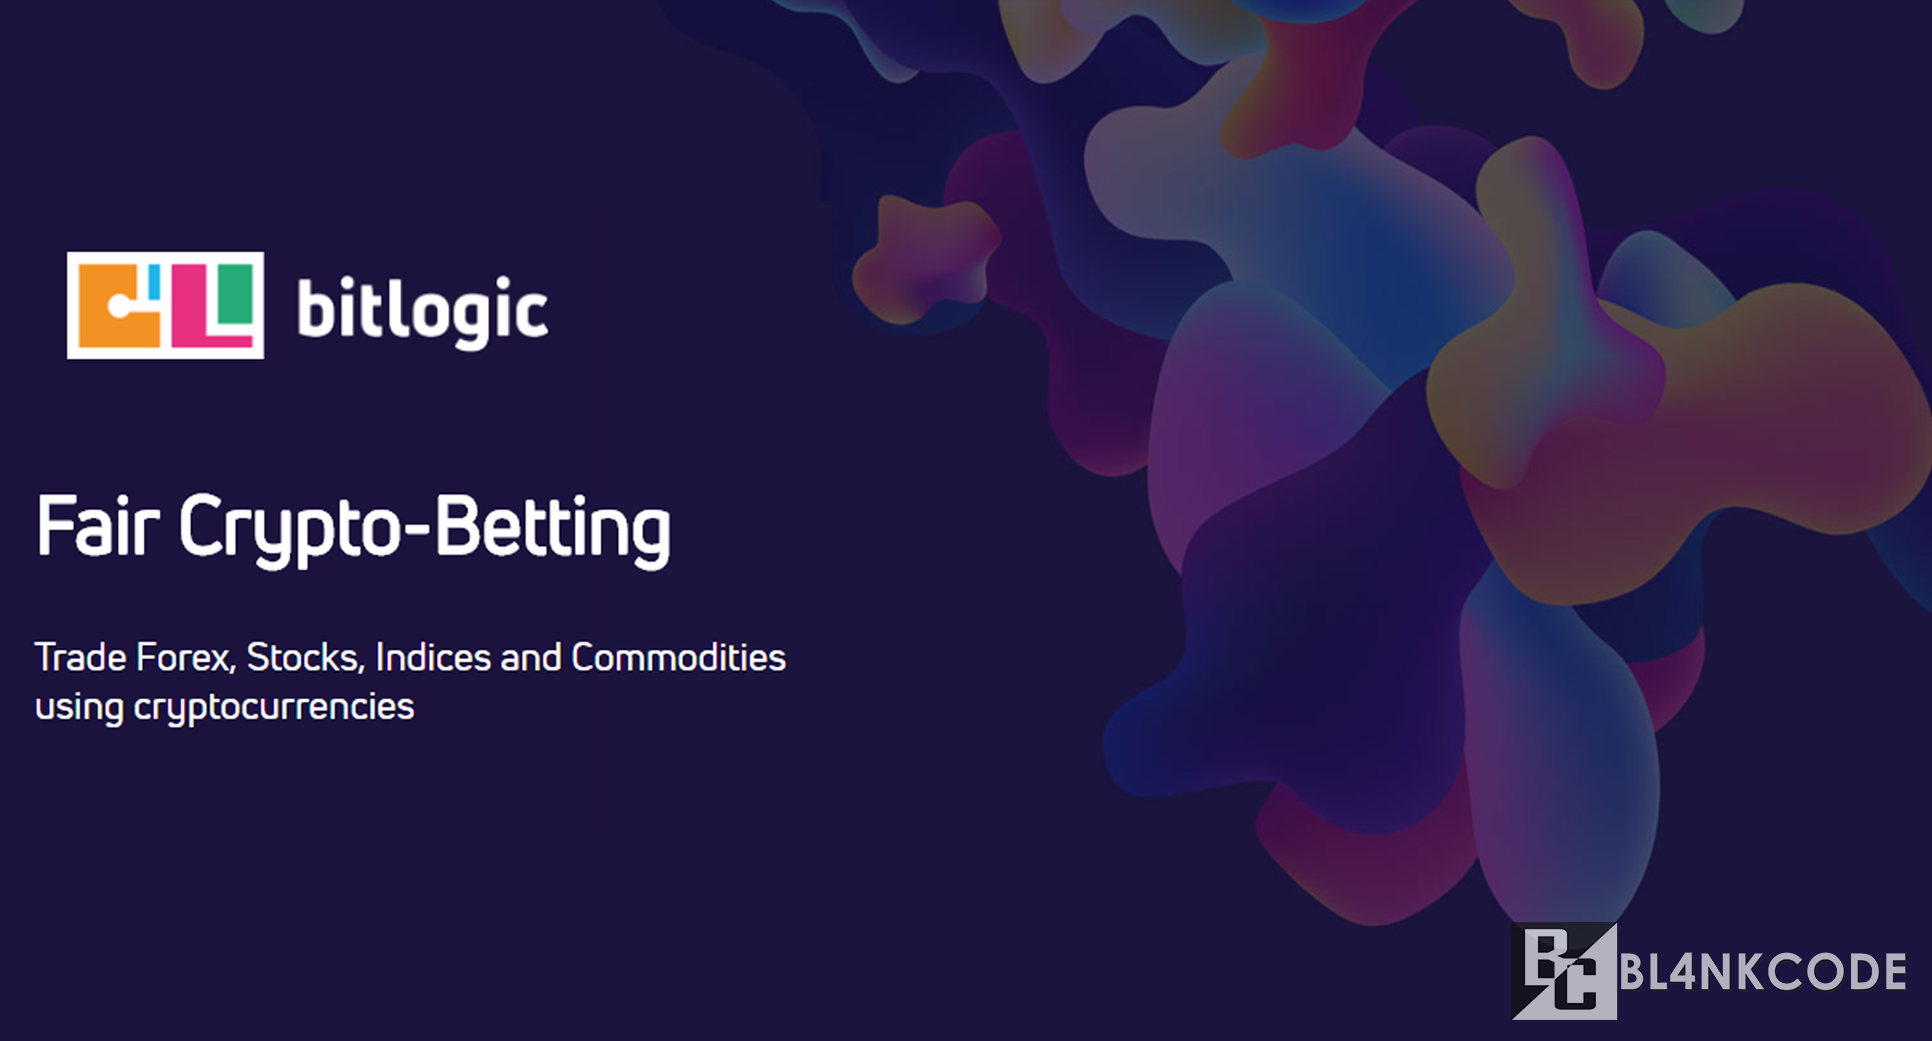 Bitlogic.cc — Fair Crypto-Betting Platform | https://bl4nkcode.info/cryptocurrency/article/13/bitlogic-fair-crypto-betting-platform